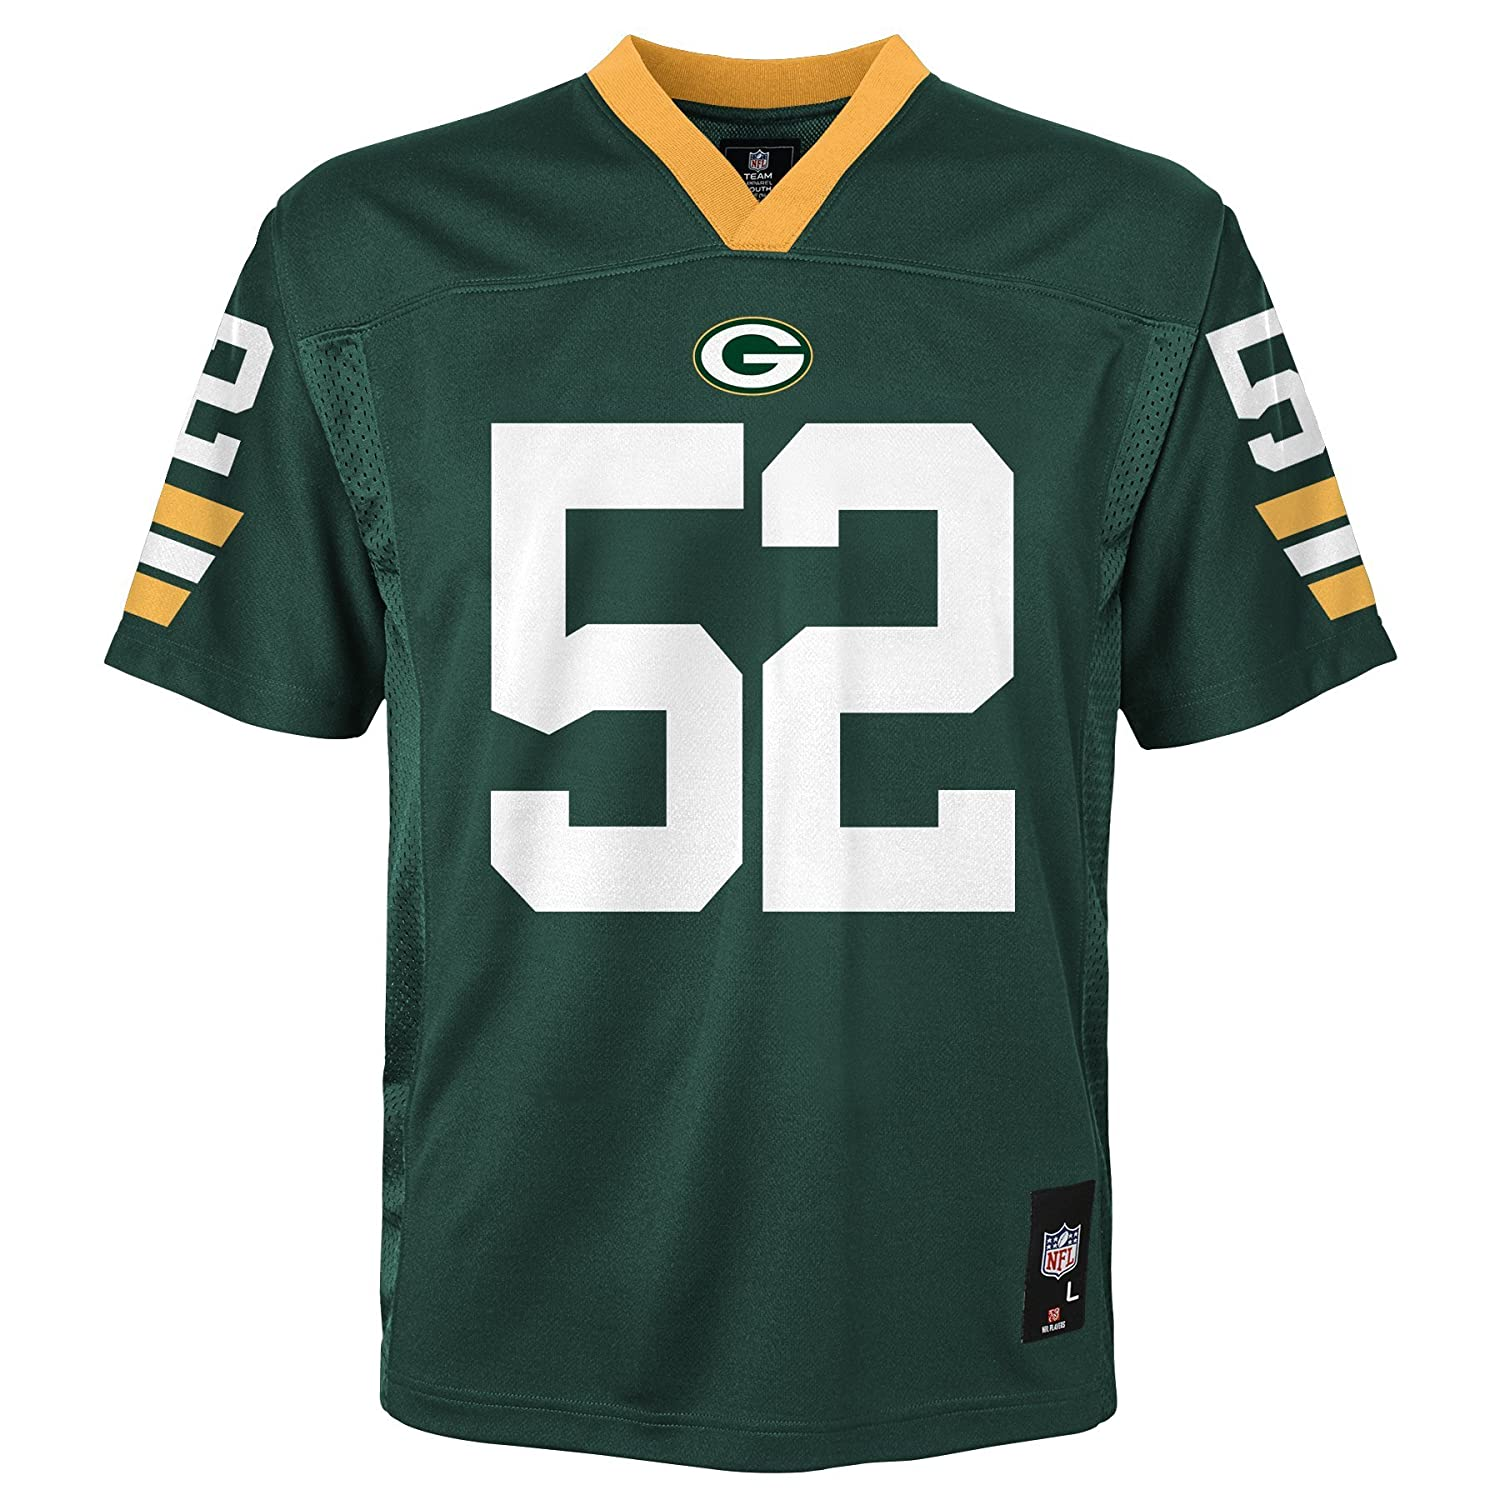 Outerstuff NFL Boys Player Name and Number Jersey